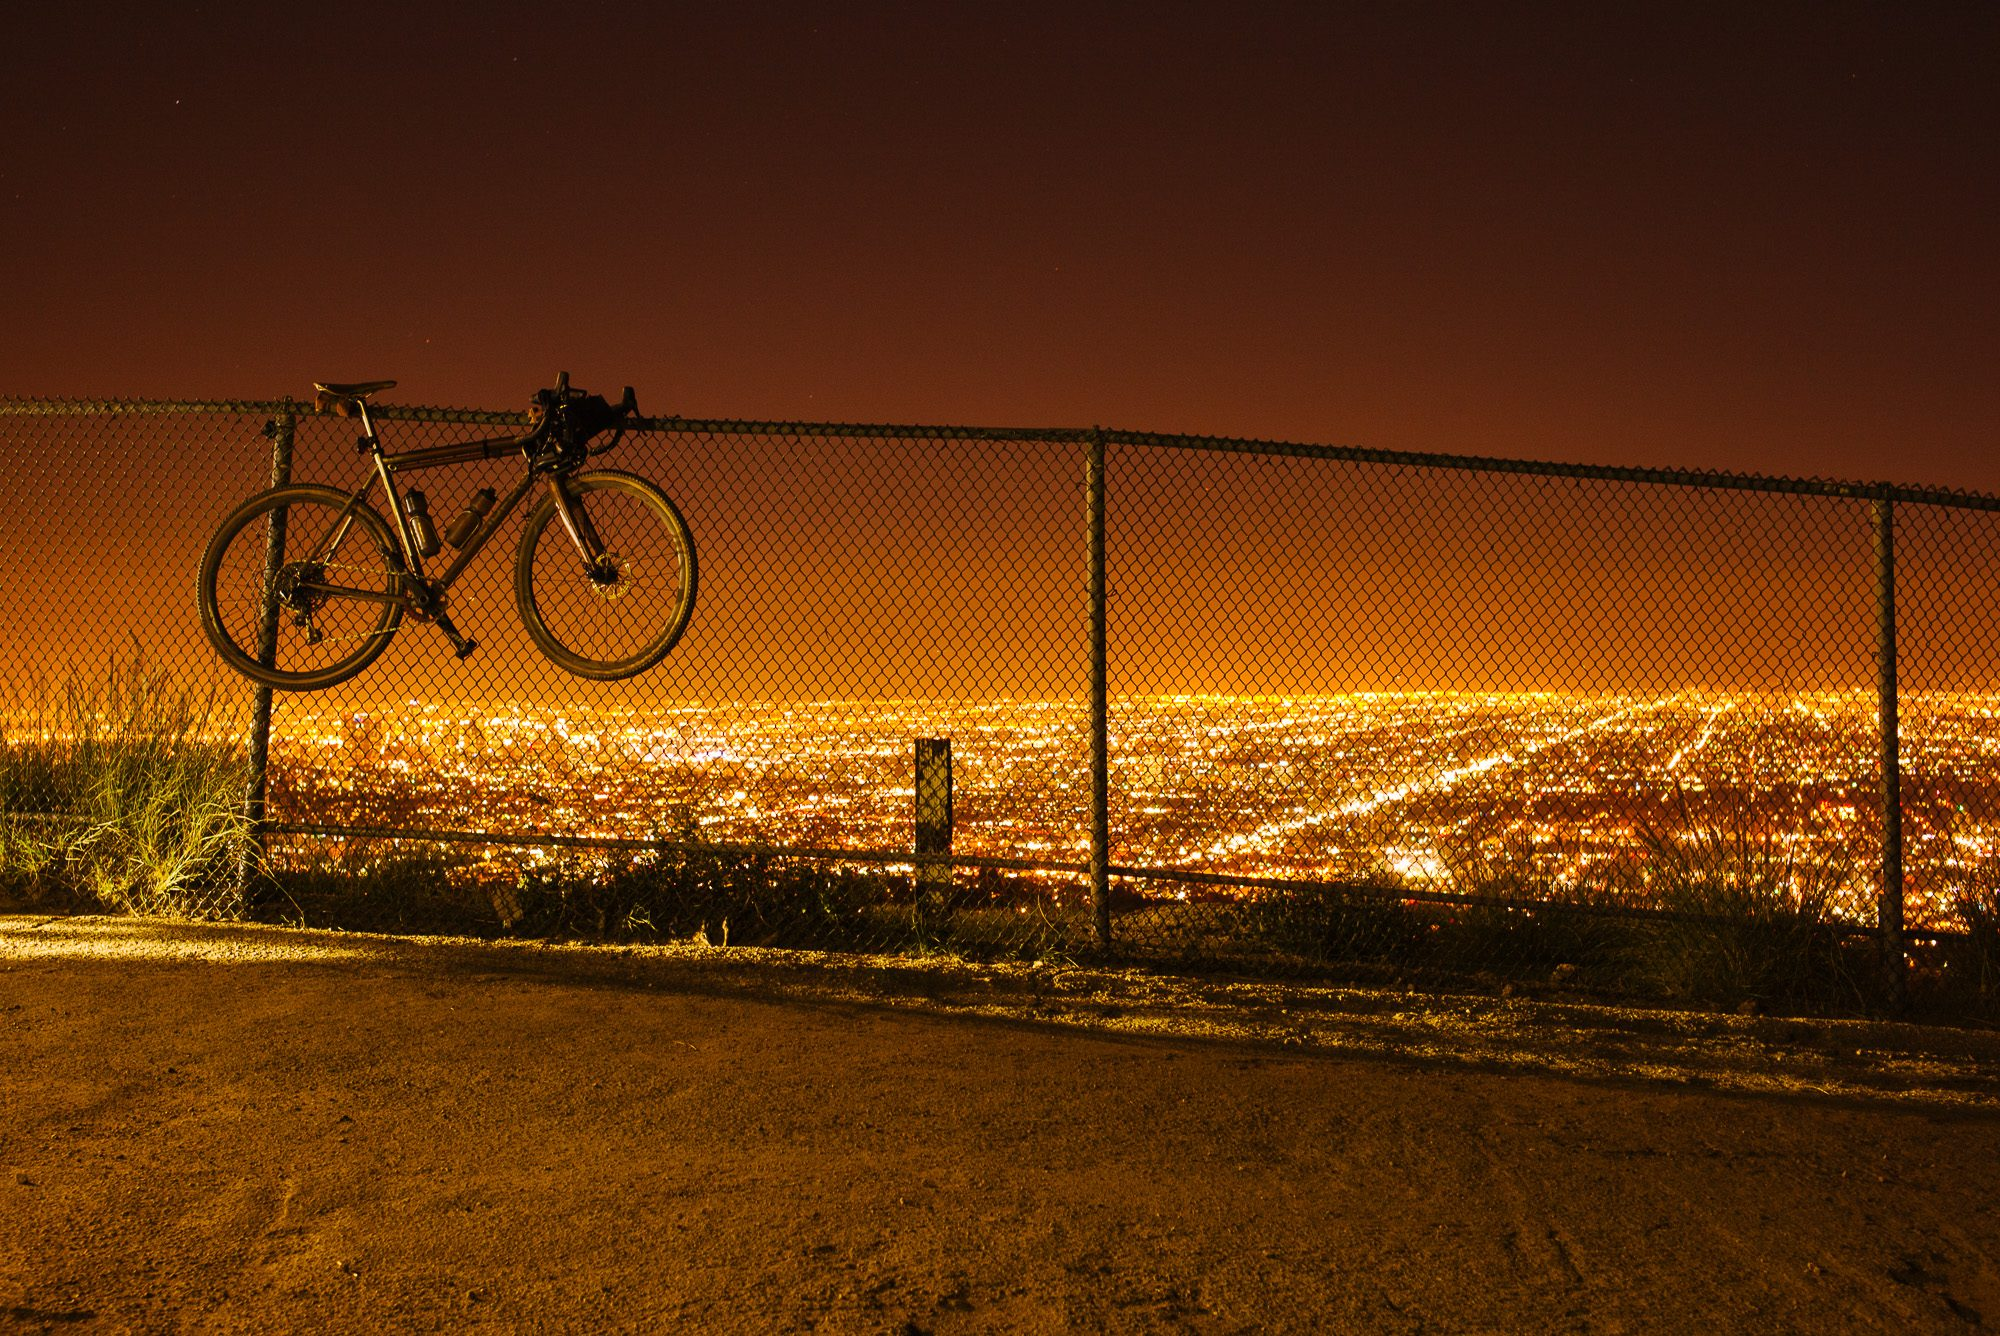 ... Been Playing Tour Guide Here In Los Angeles, Taking Out Of Towners On  Various Rides, Mostly Revolving Around The Blacktop In Griffith Park At  Sunset.